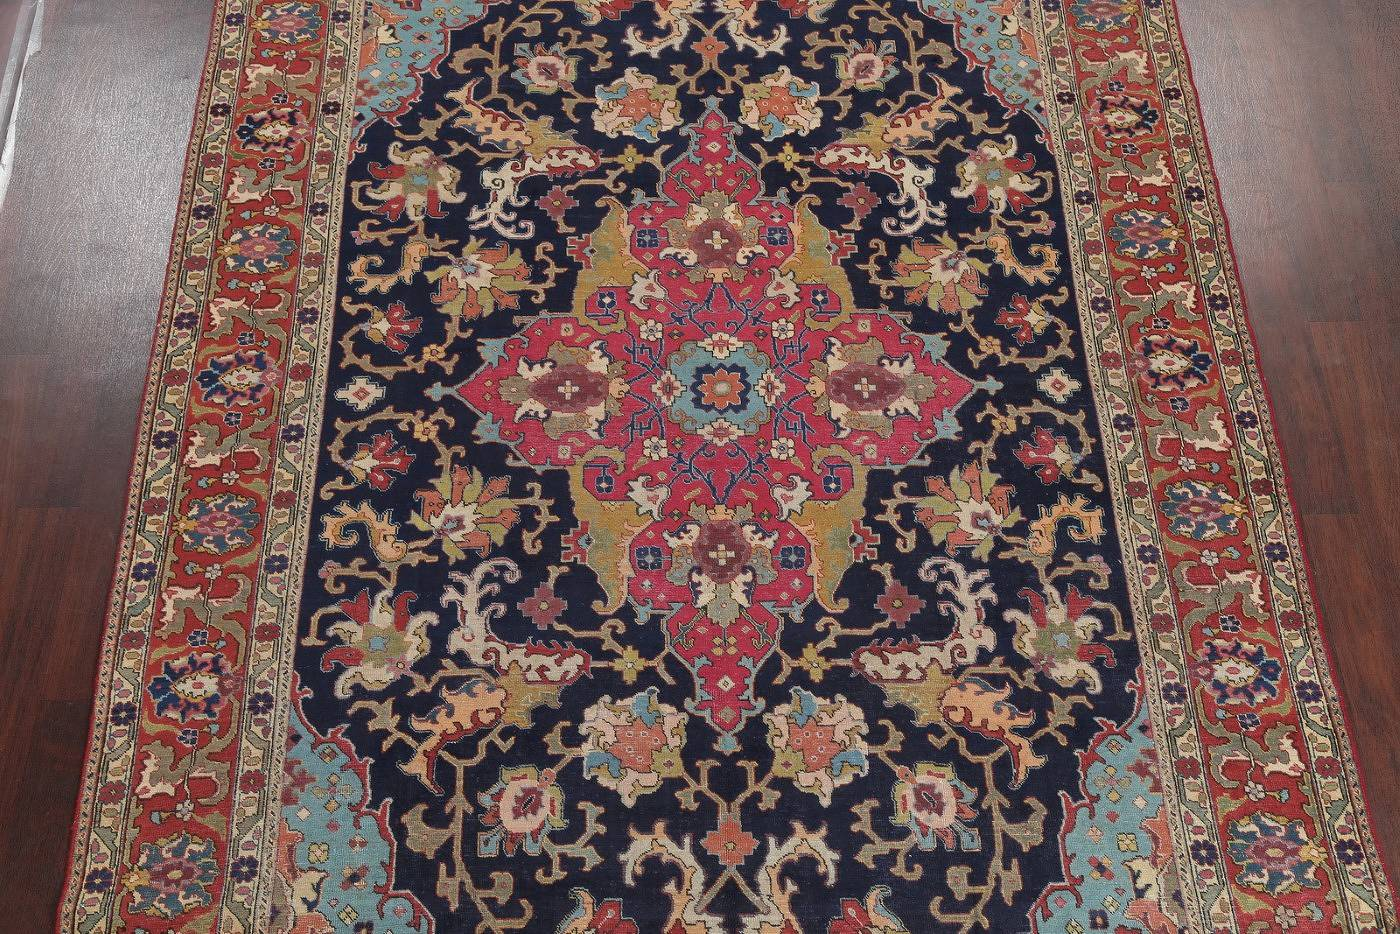 Antique Vegetable Dye Tabriz Persian Hand-Knotted 8x11 Navy Blue Area Rug